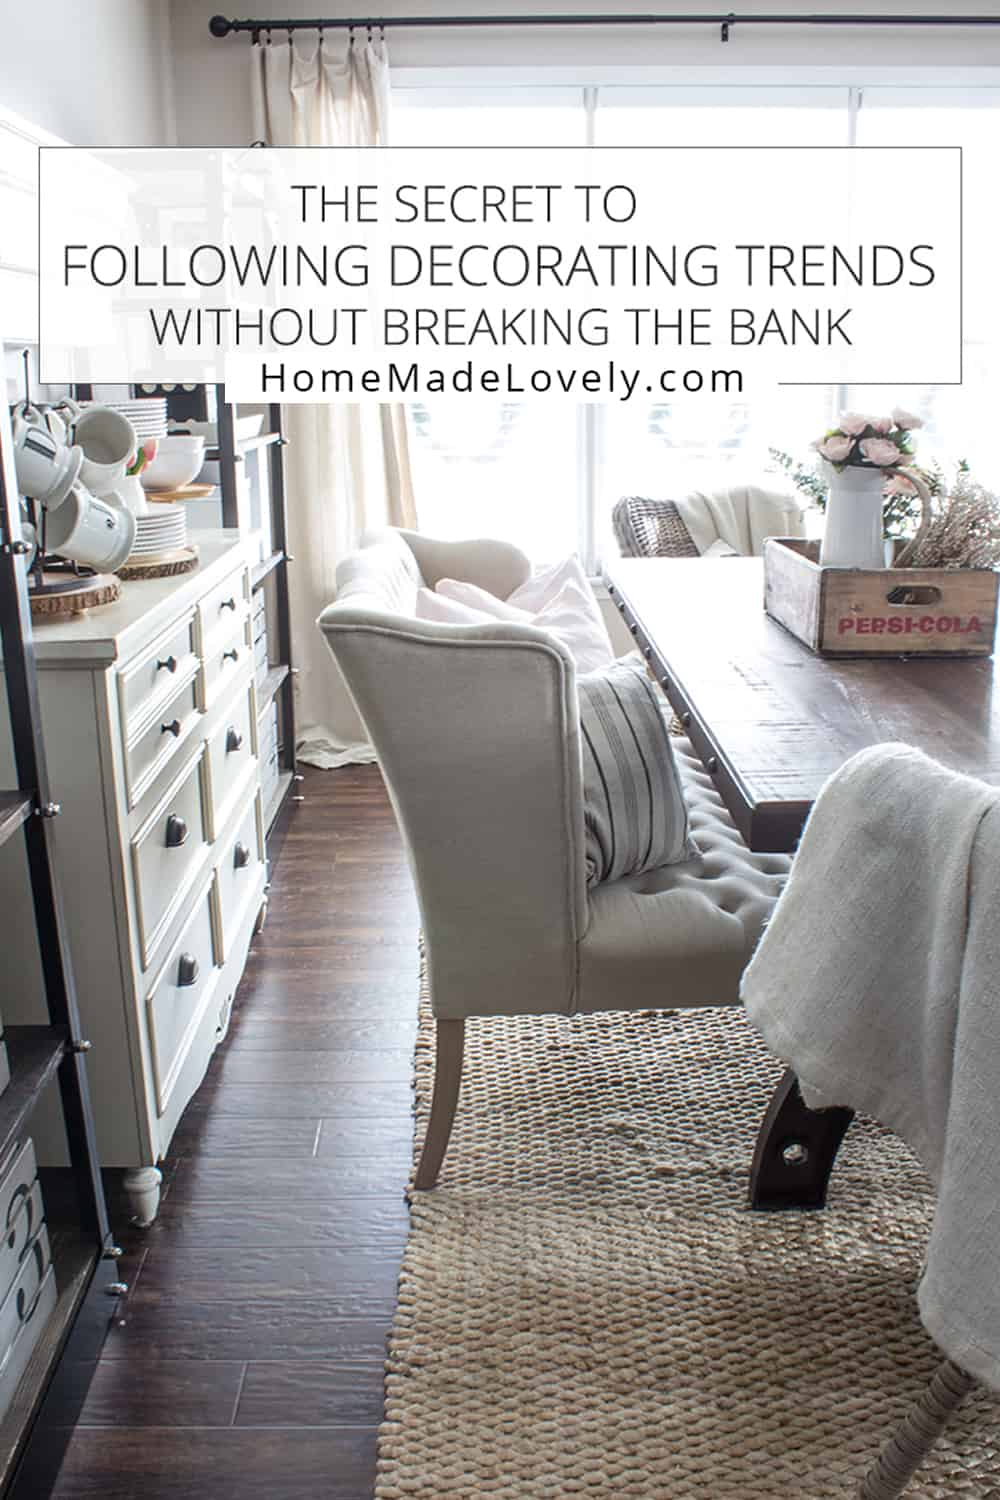 https://homemadelovely.com/wp-content/uploads/2016/07/the-secret-to-following-decorating-trends-without-breaking-the-bank.jpg